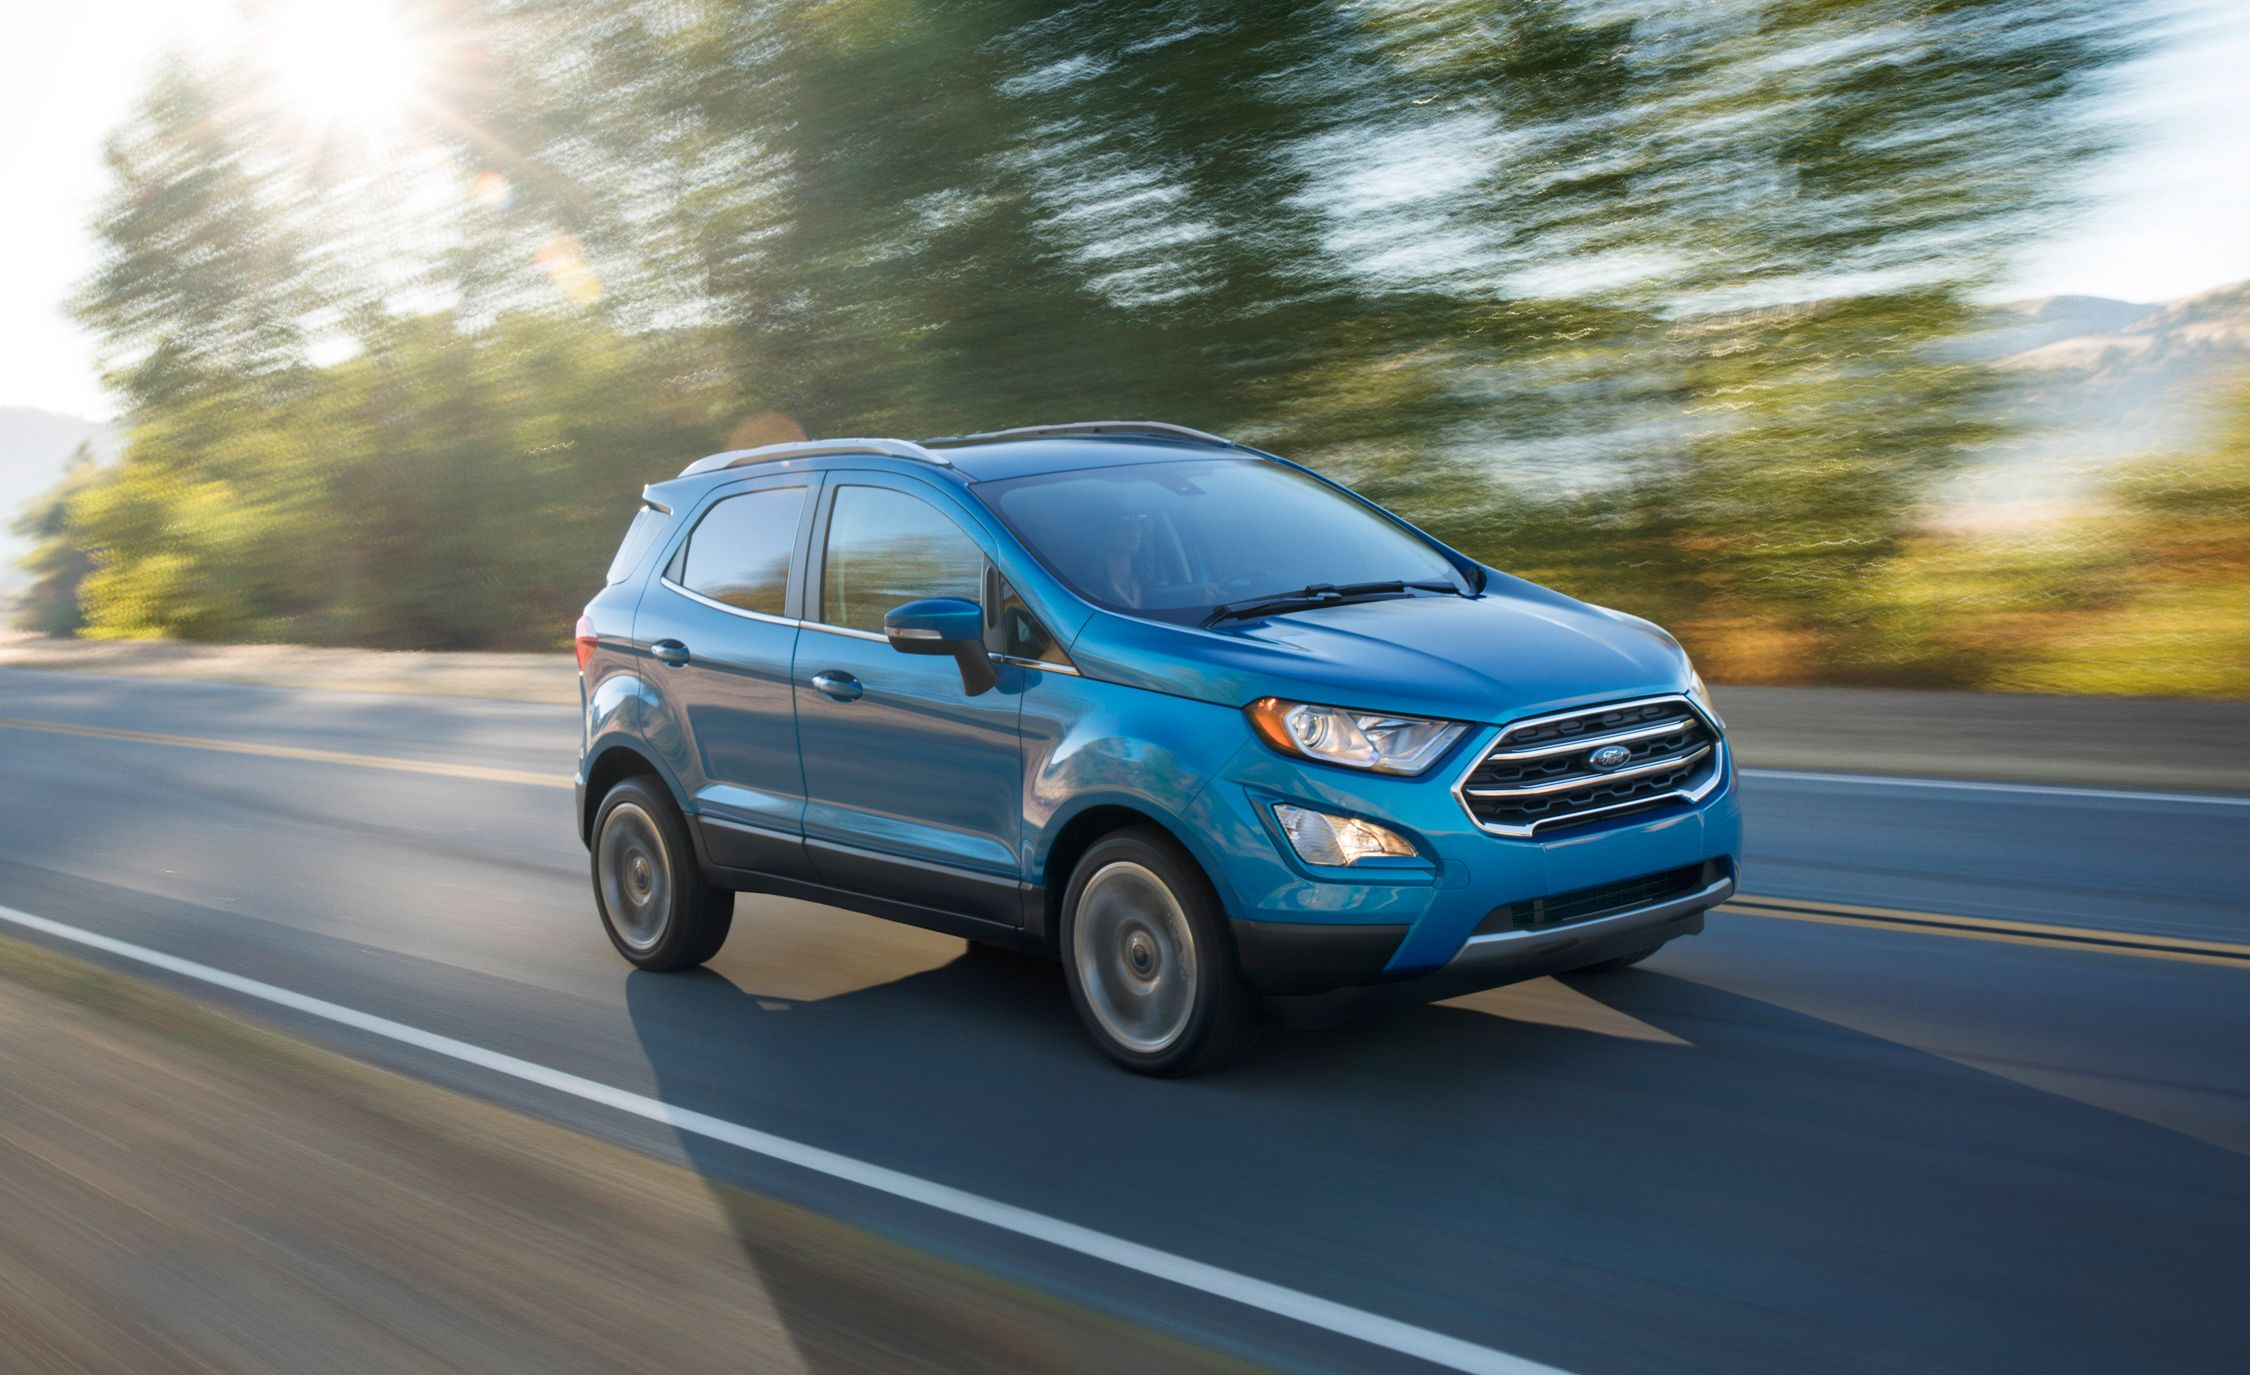 2018 ford ecosport finally gets in the wee suv game